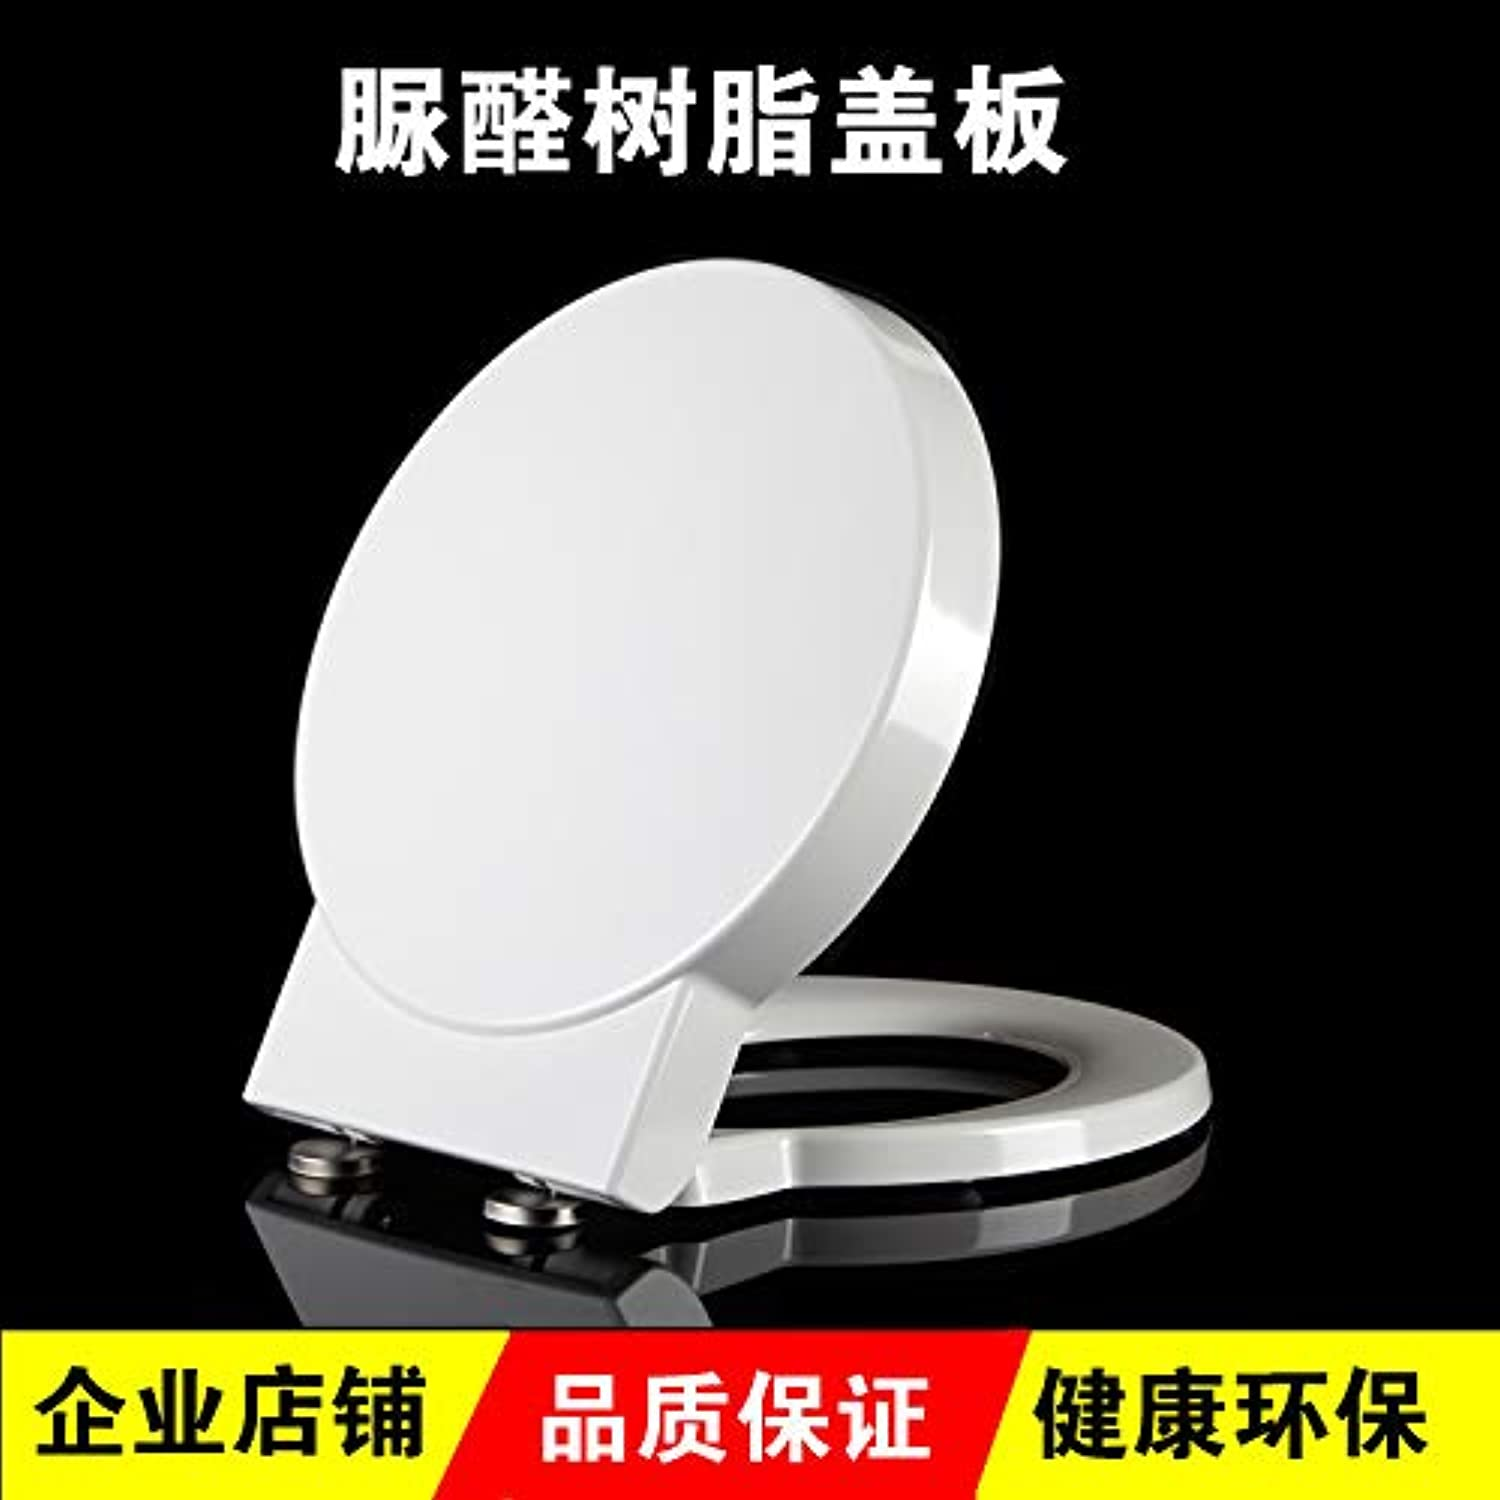 Toilet Seats O Style Universal with Release Hinges Antibacterial Top Mounted Removable Easy Clean Toilet Lid for Family Use 45  40cm